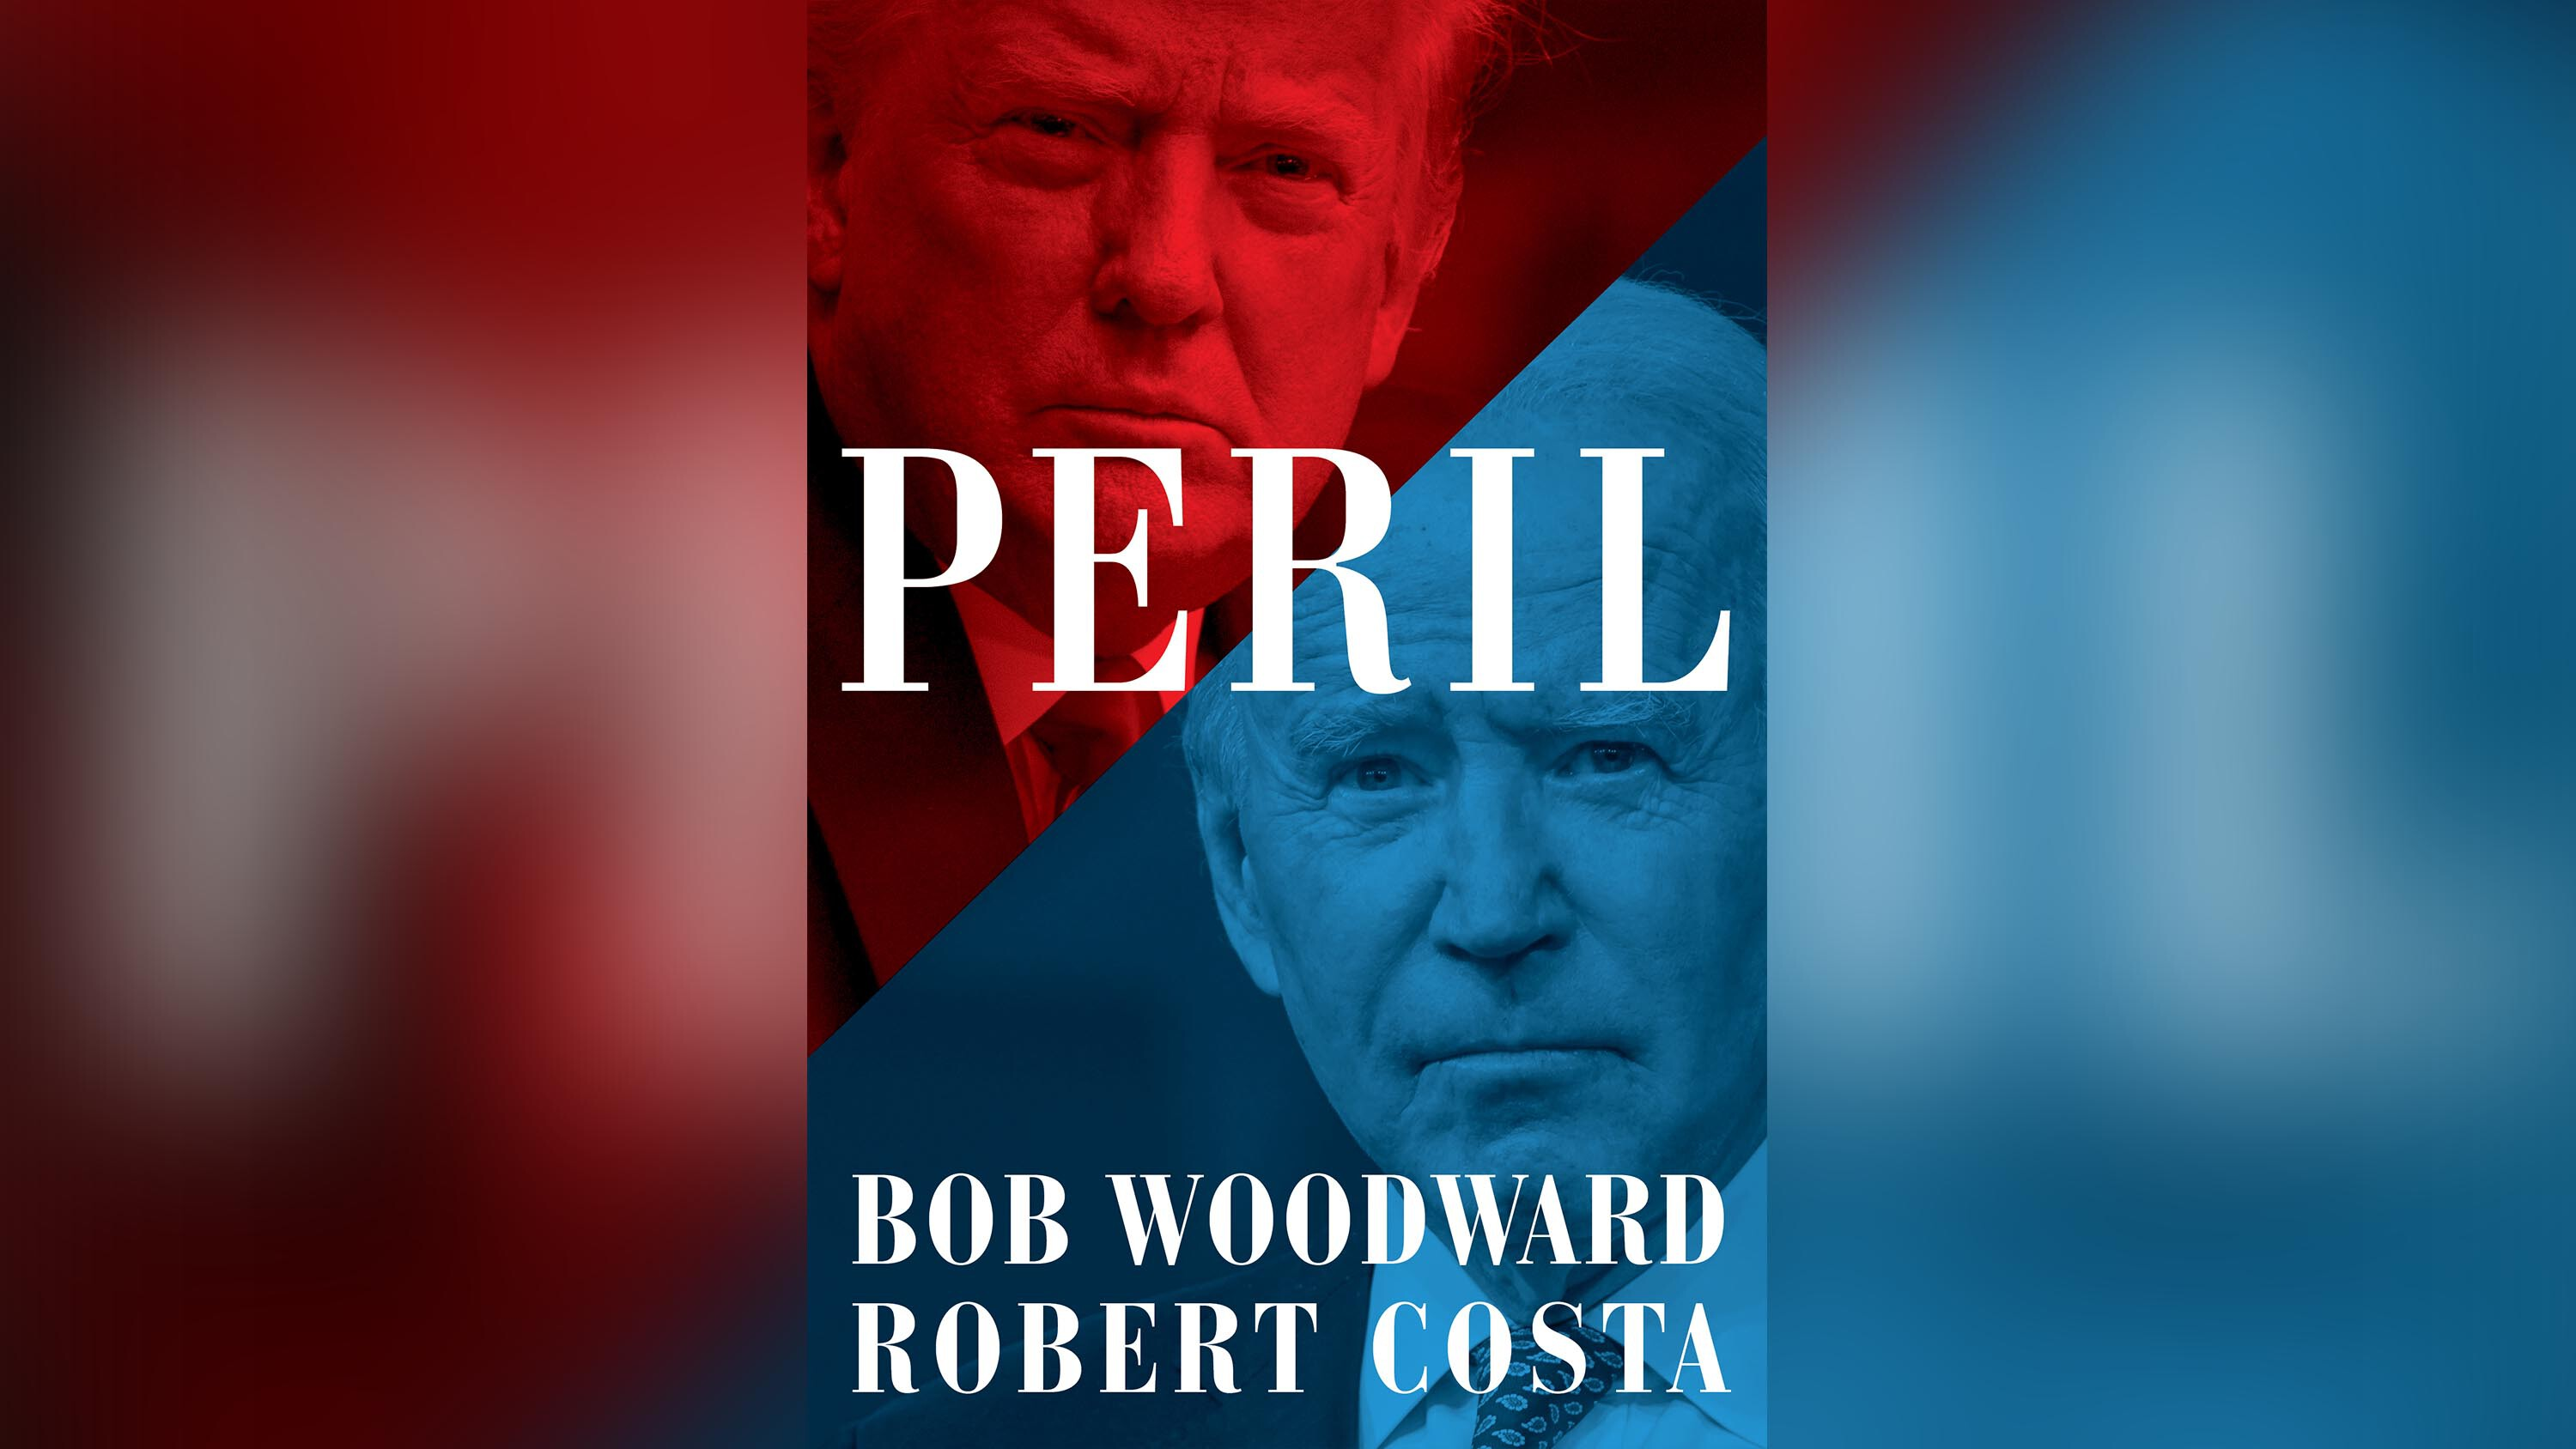 Exclusive: Title, cover and details of new Trump book from Bob Woodward and Robert Costa revealed